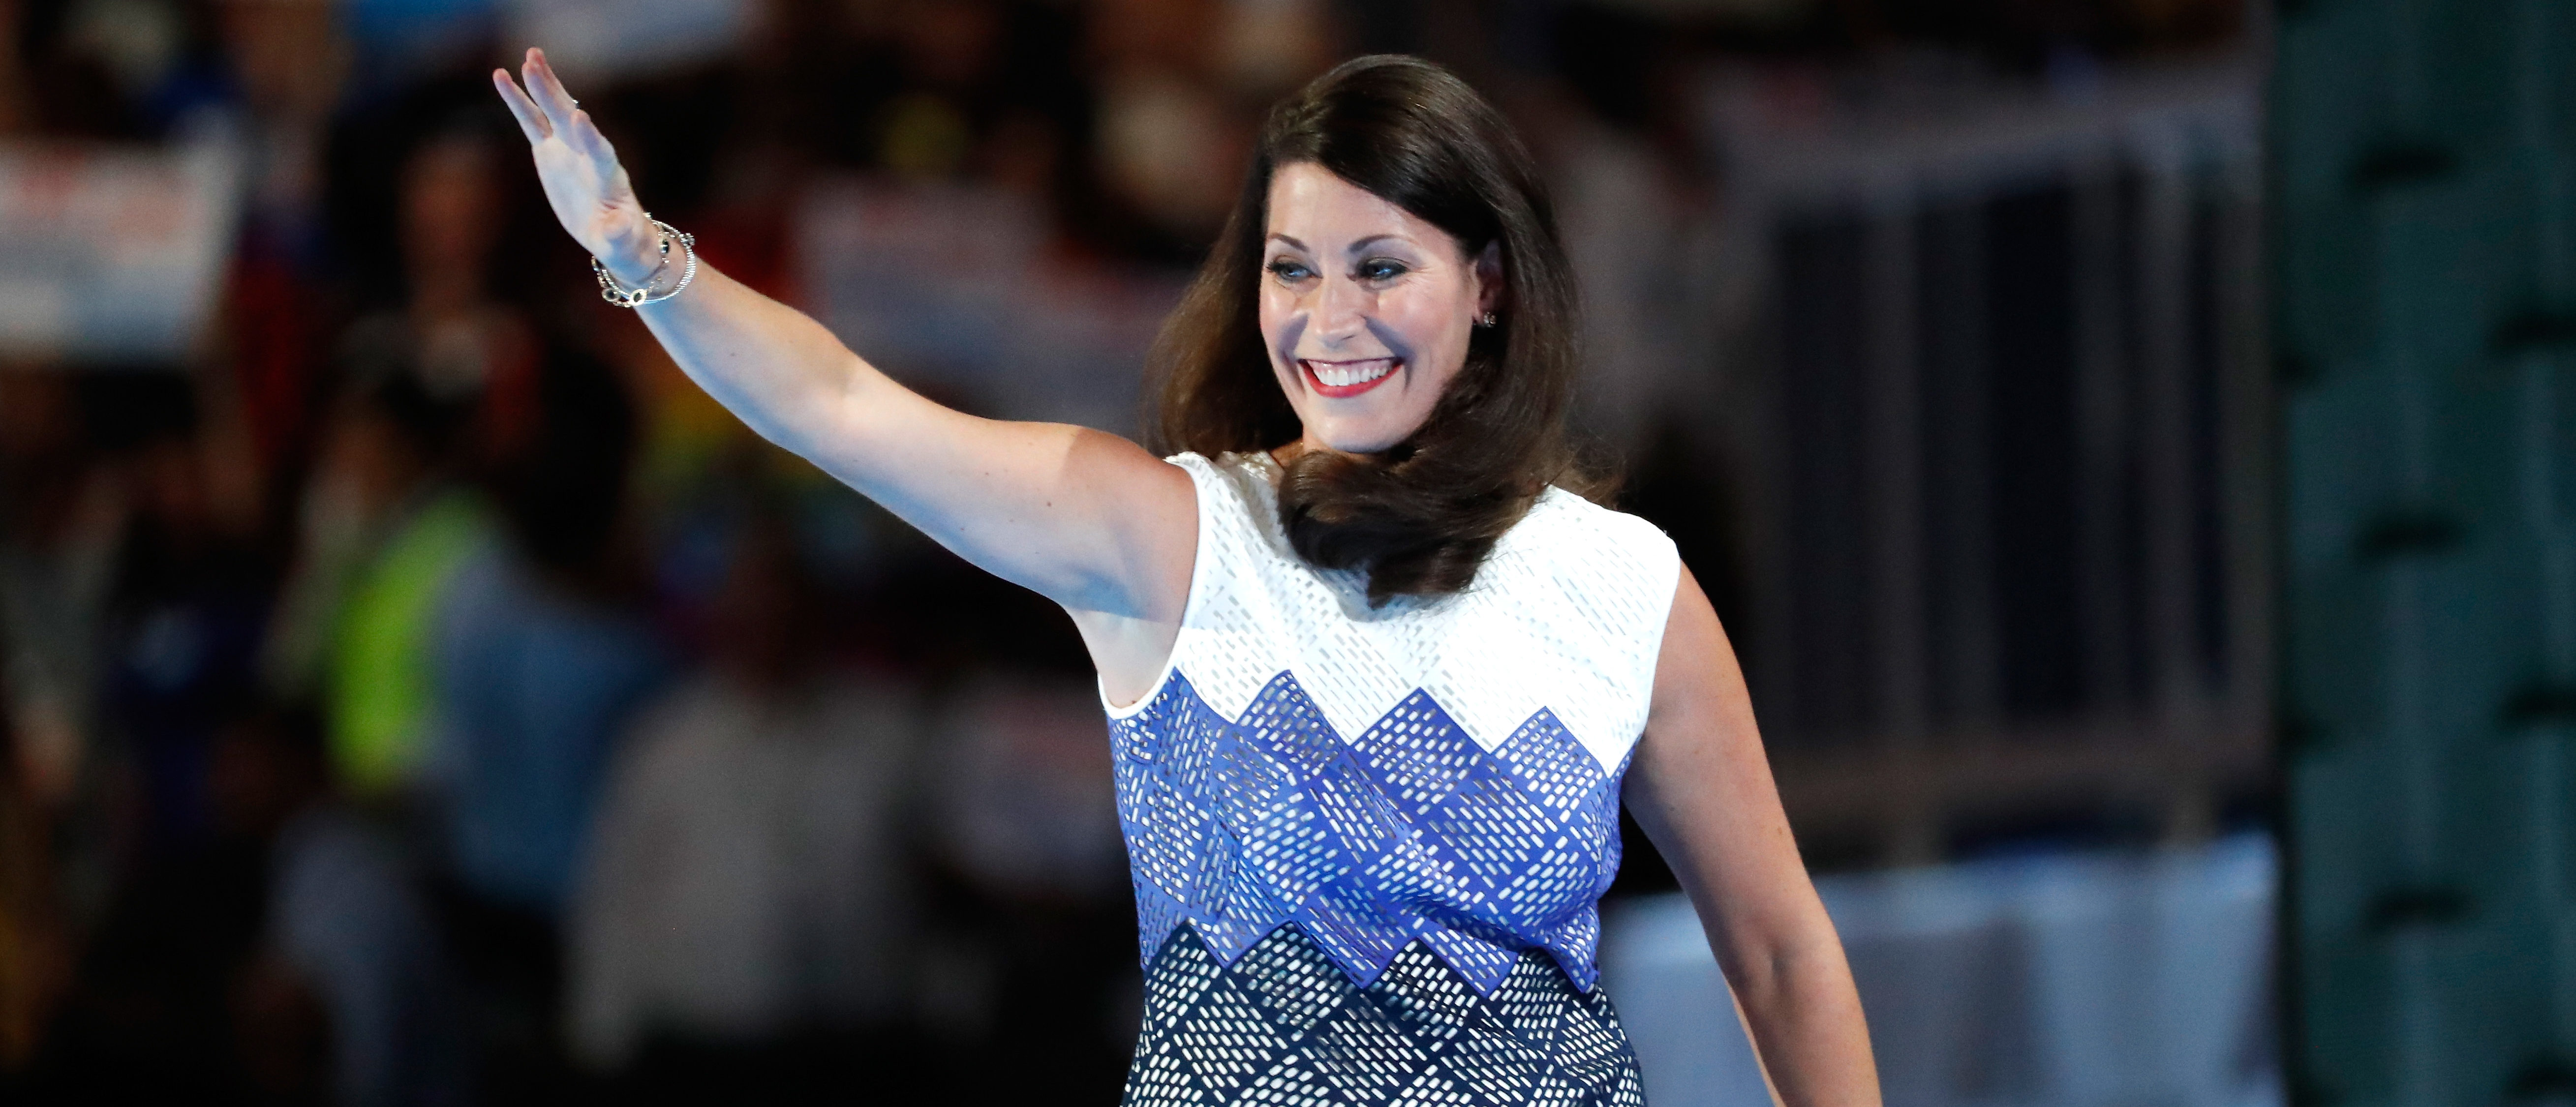 PHILADELPHIA, PA - JULY 26: Kentucky Secretary of State Alison Lundergan Grimes waves to the crowd on the second day of the Democratic National Convention at the Wells Fargo Center, July 26, 2016 in Philadelphia, Pennsylvania. An estimated 50,000 people are expected in Philadelphia, including hundreds of protesters and members of the media. The four-day Democratic National Convention kicked off July 25. (Photo by Aaron P. Bernstein/Getty Images)